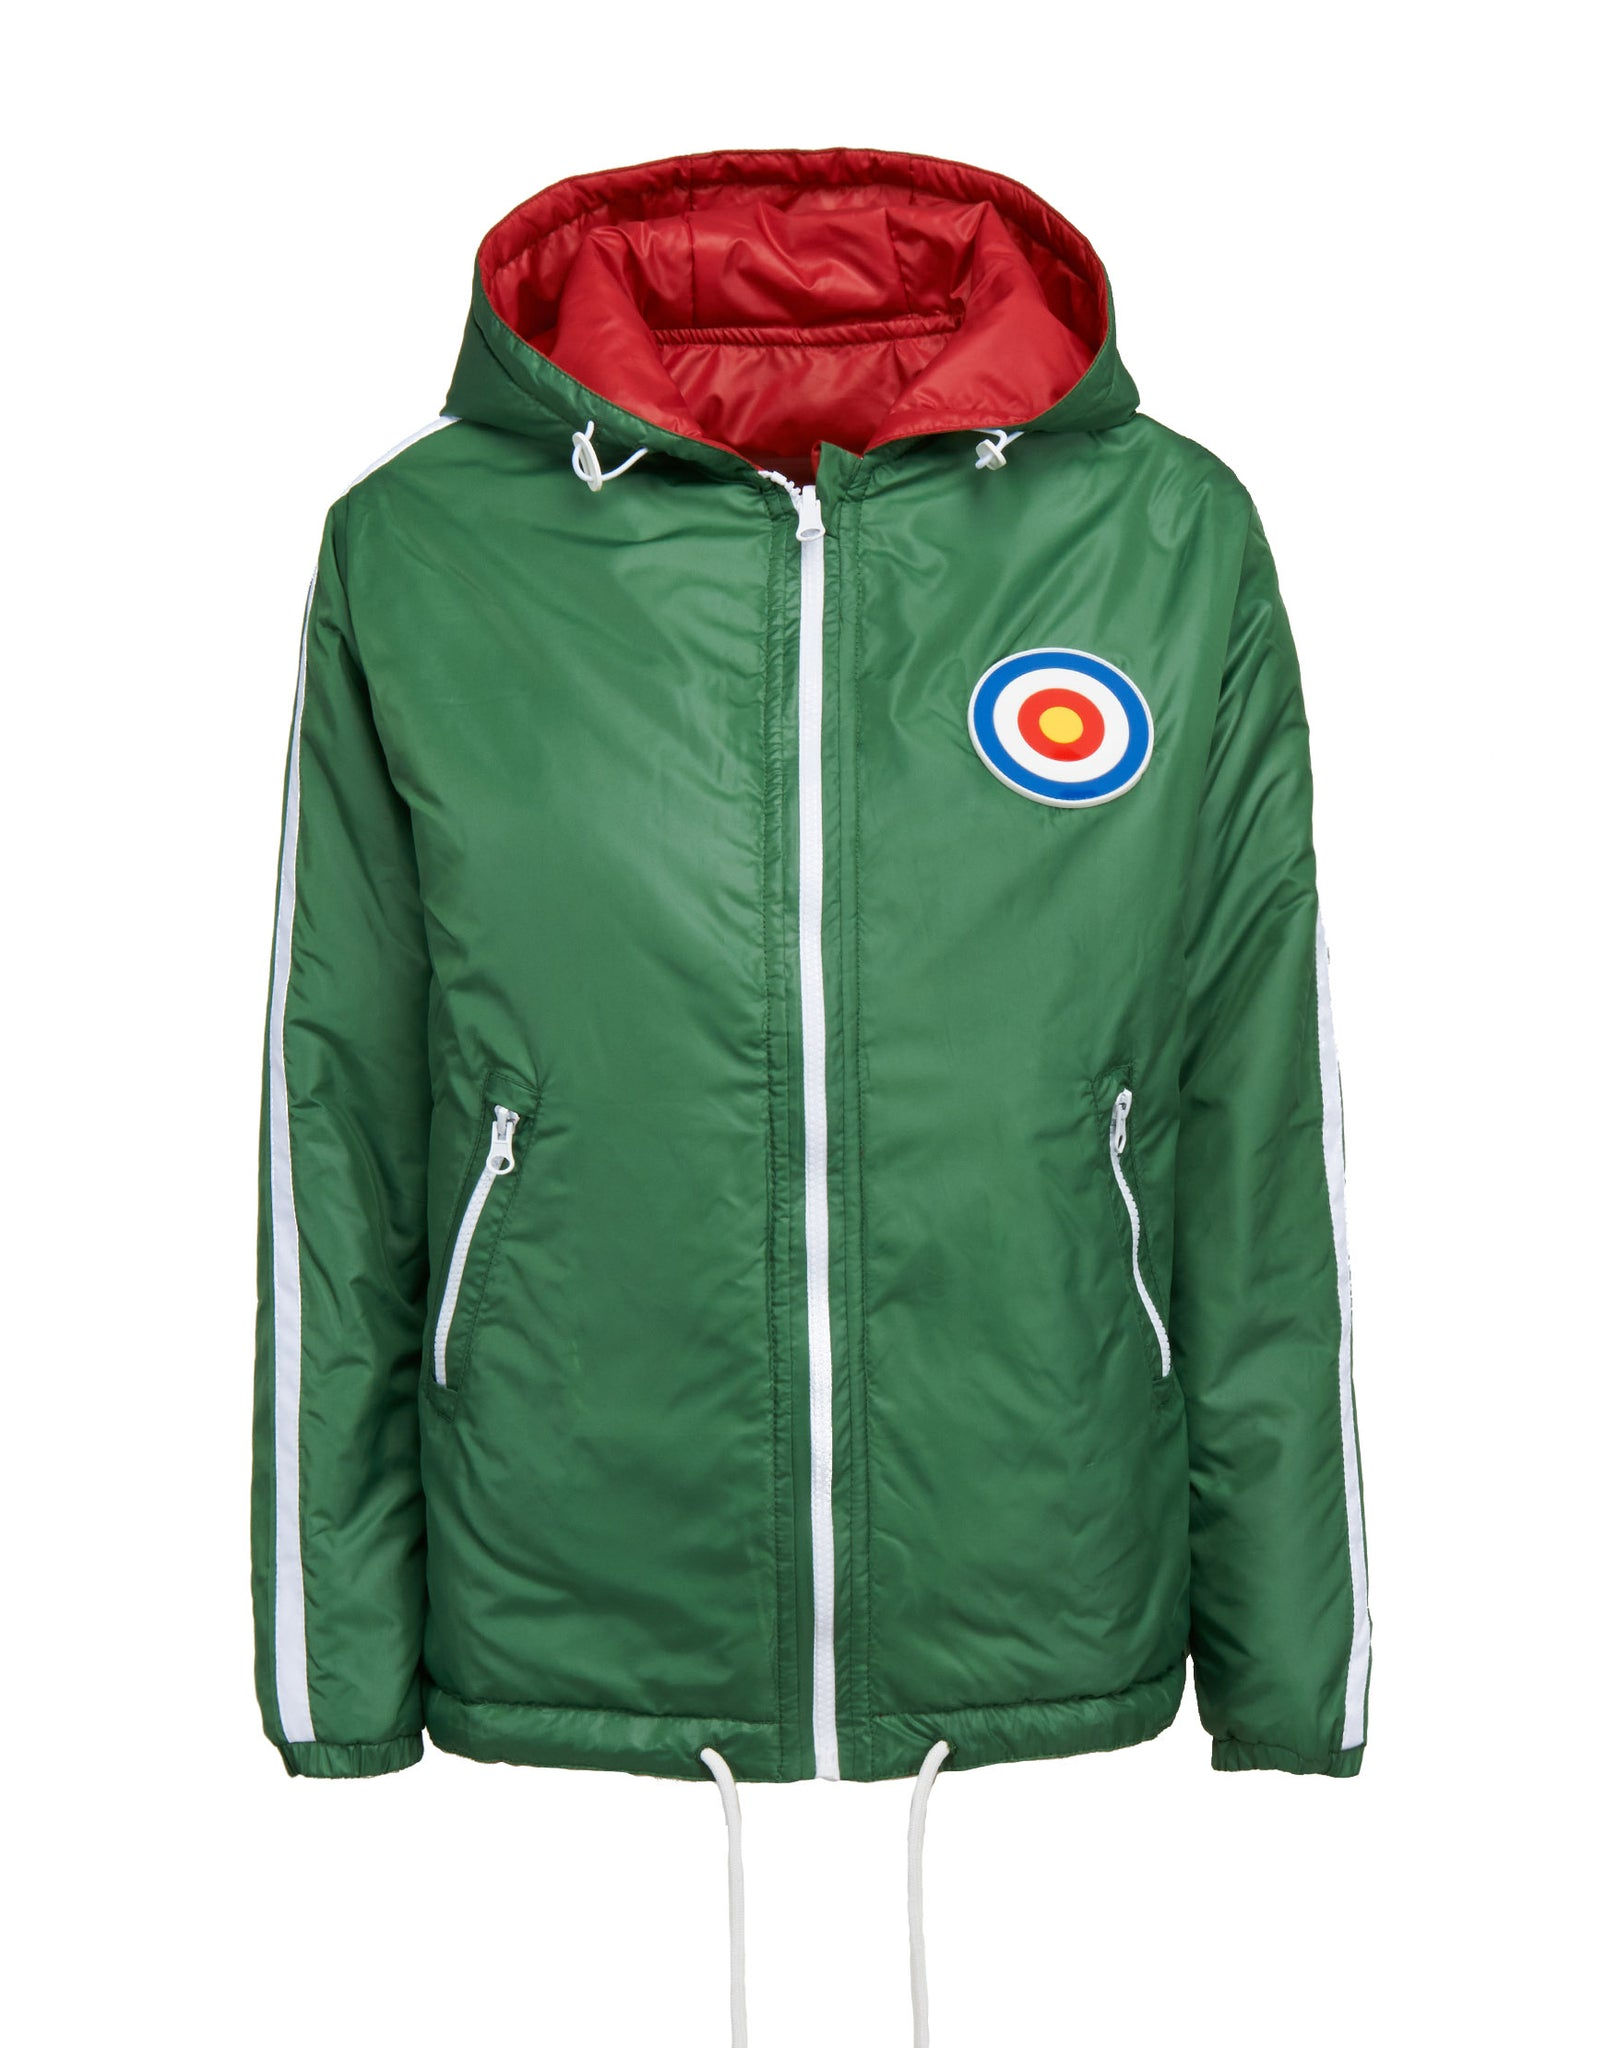 NORTHERNLIGHT windbreaker